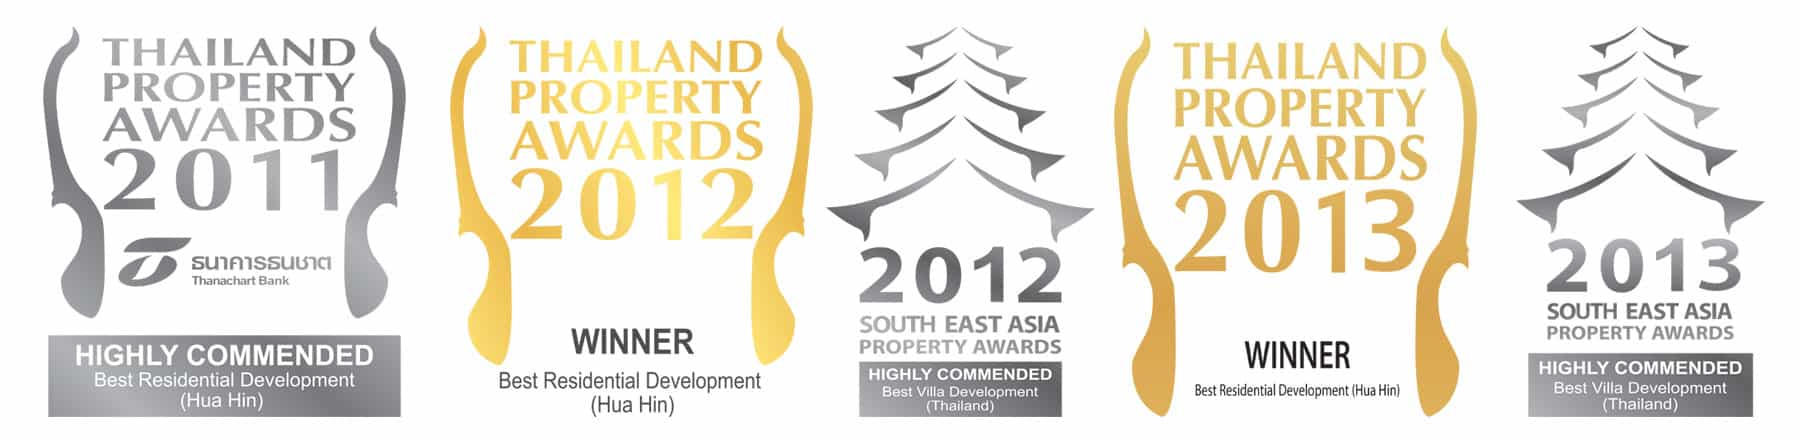 Thailand-Property-Awards---Orchid-Palm-Homes (1)